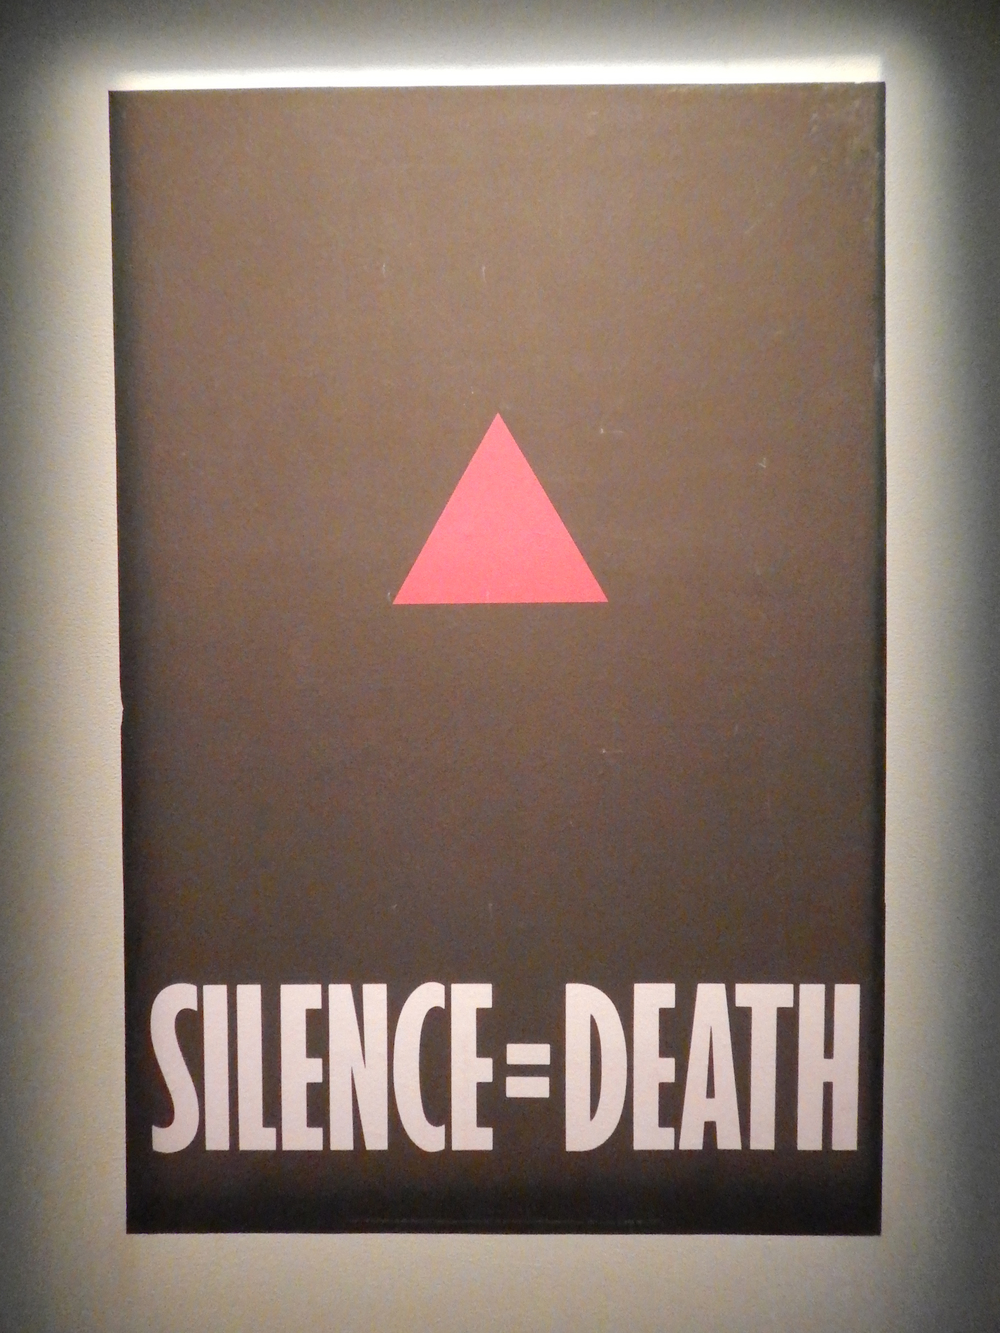 Silence = Death, Poster, offset lithography (projected documentation), 29 x 24 inches